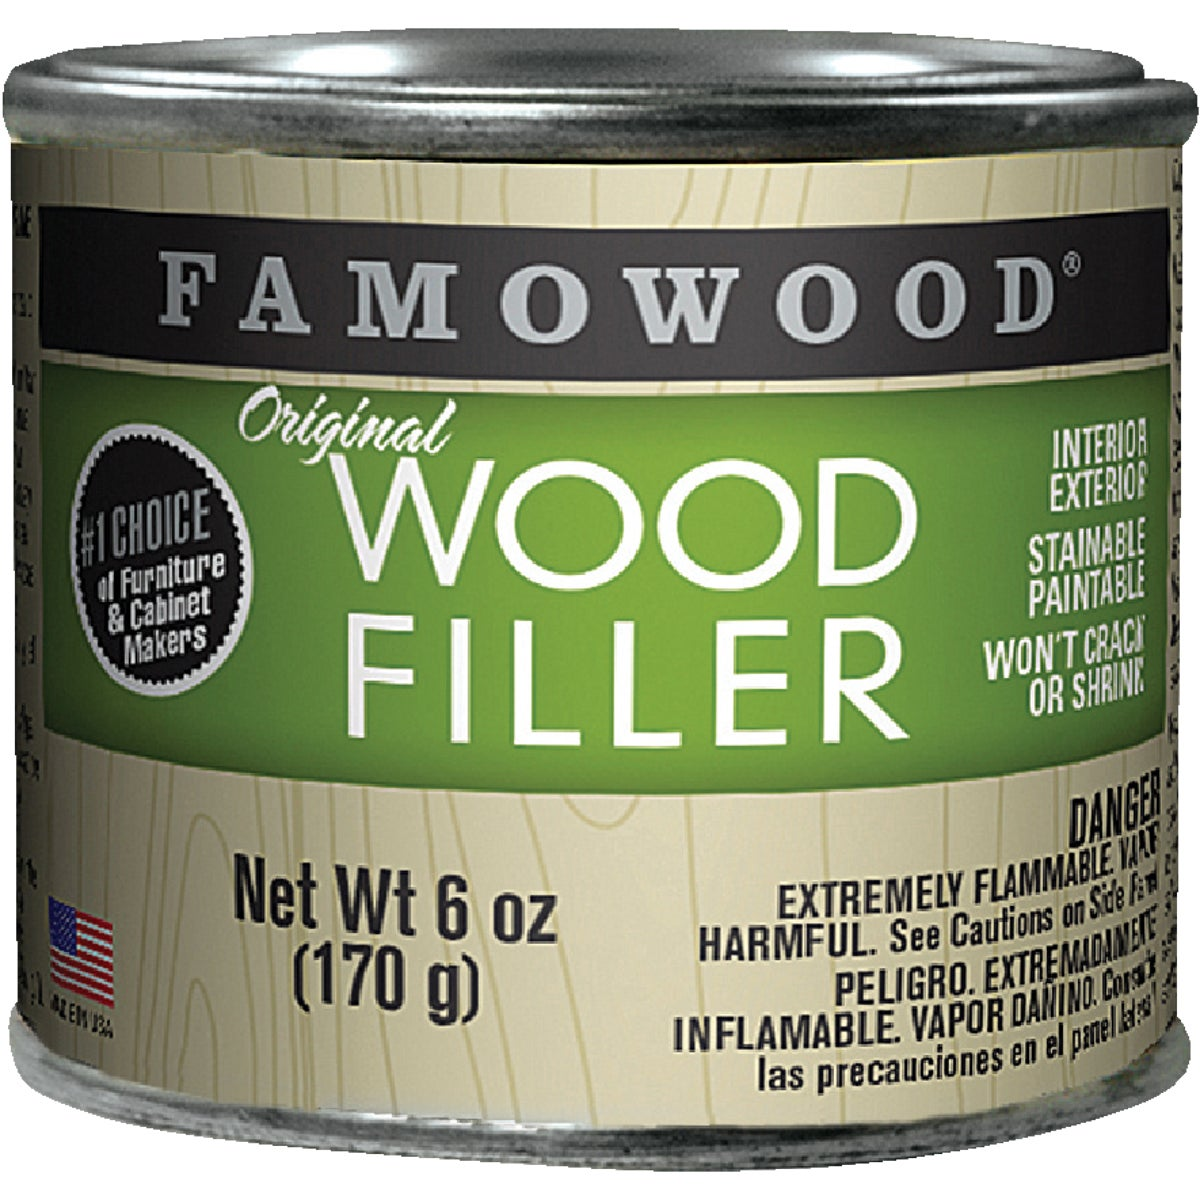 1/4PT PINE WOOD FILLER - 36141130 by Eclectic Prod Inc